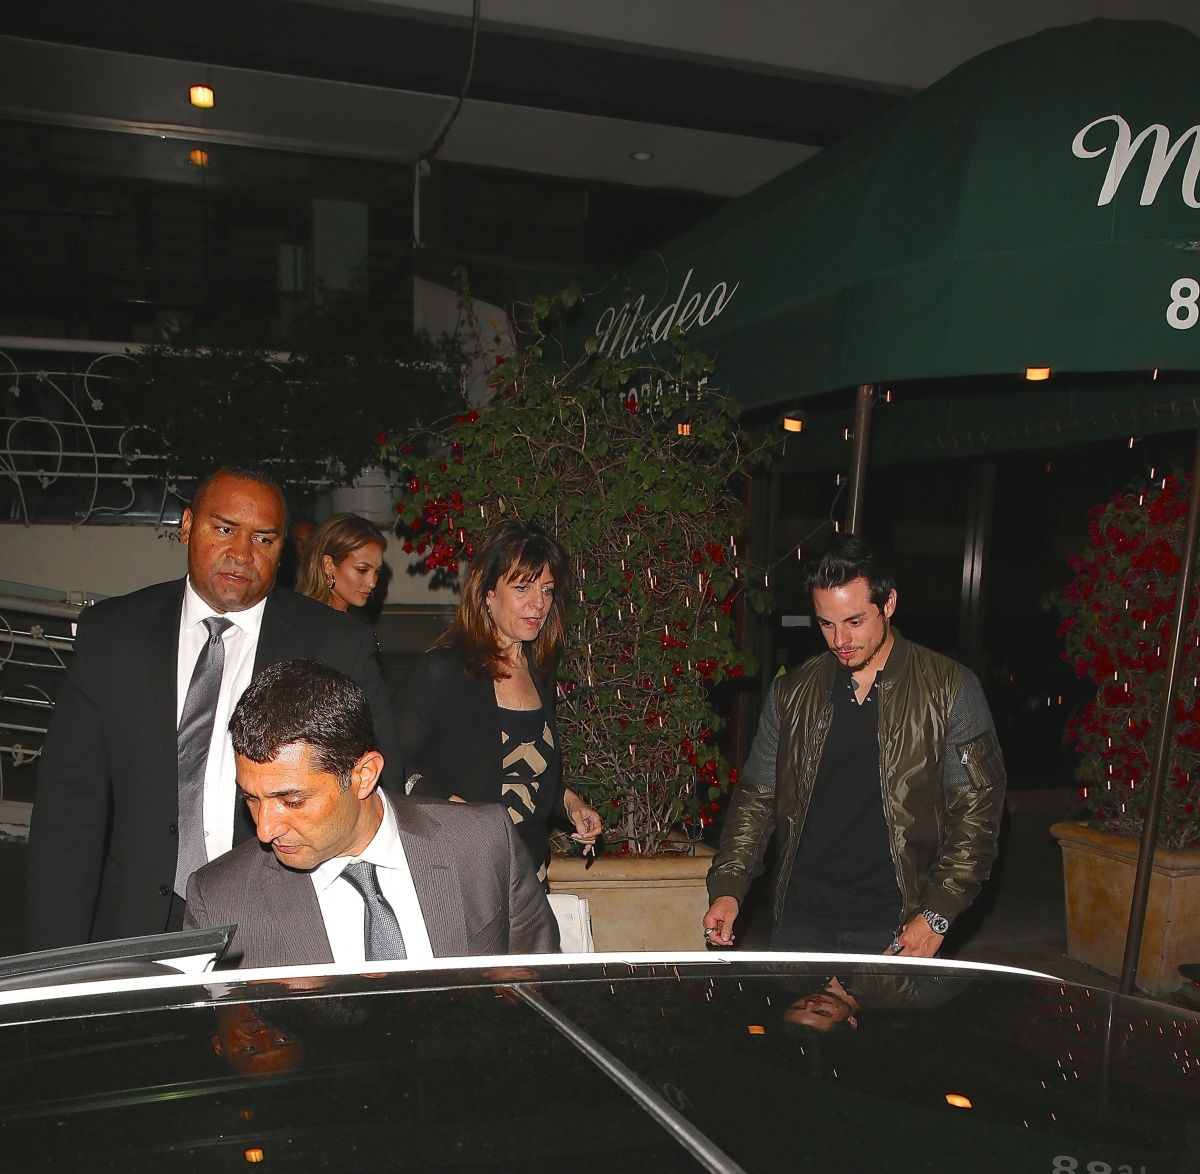 Celebrities Dine Out at Madeo Restaurant in L.A. - Yahoo